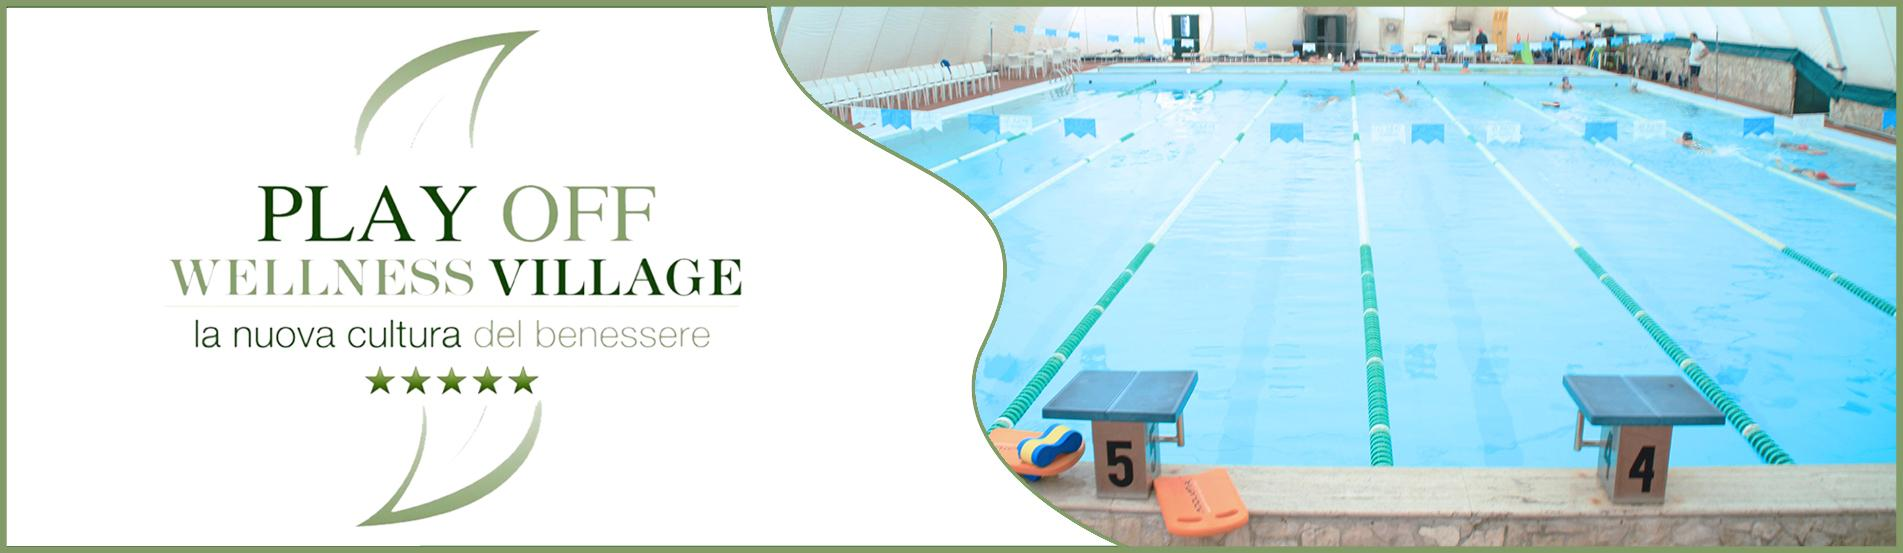 volantino-Play Off Wellness Village e piscina